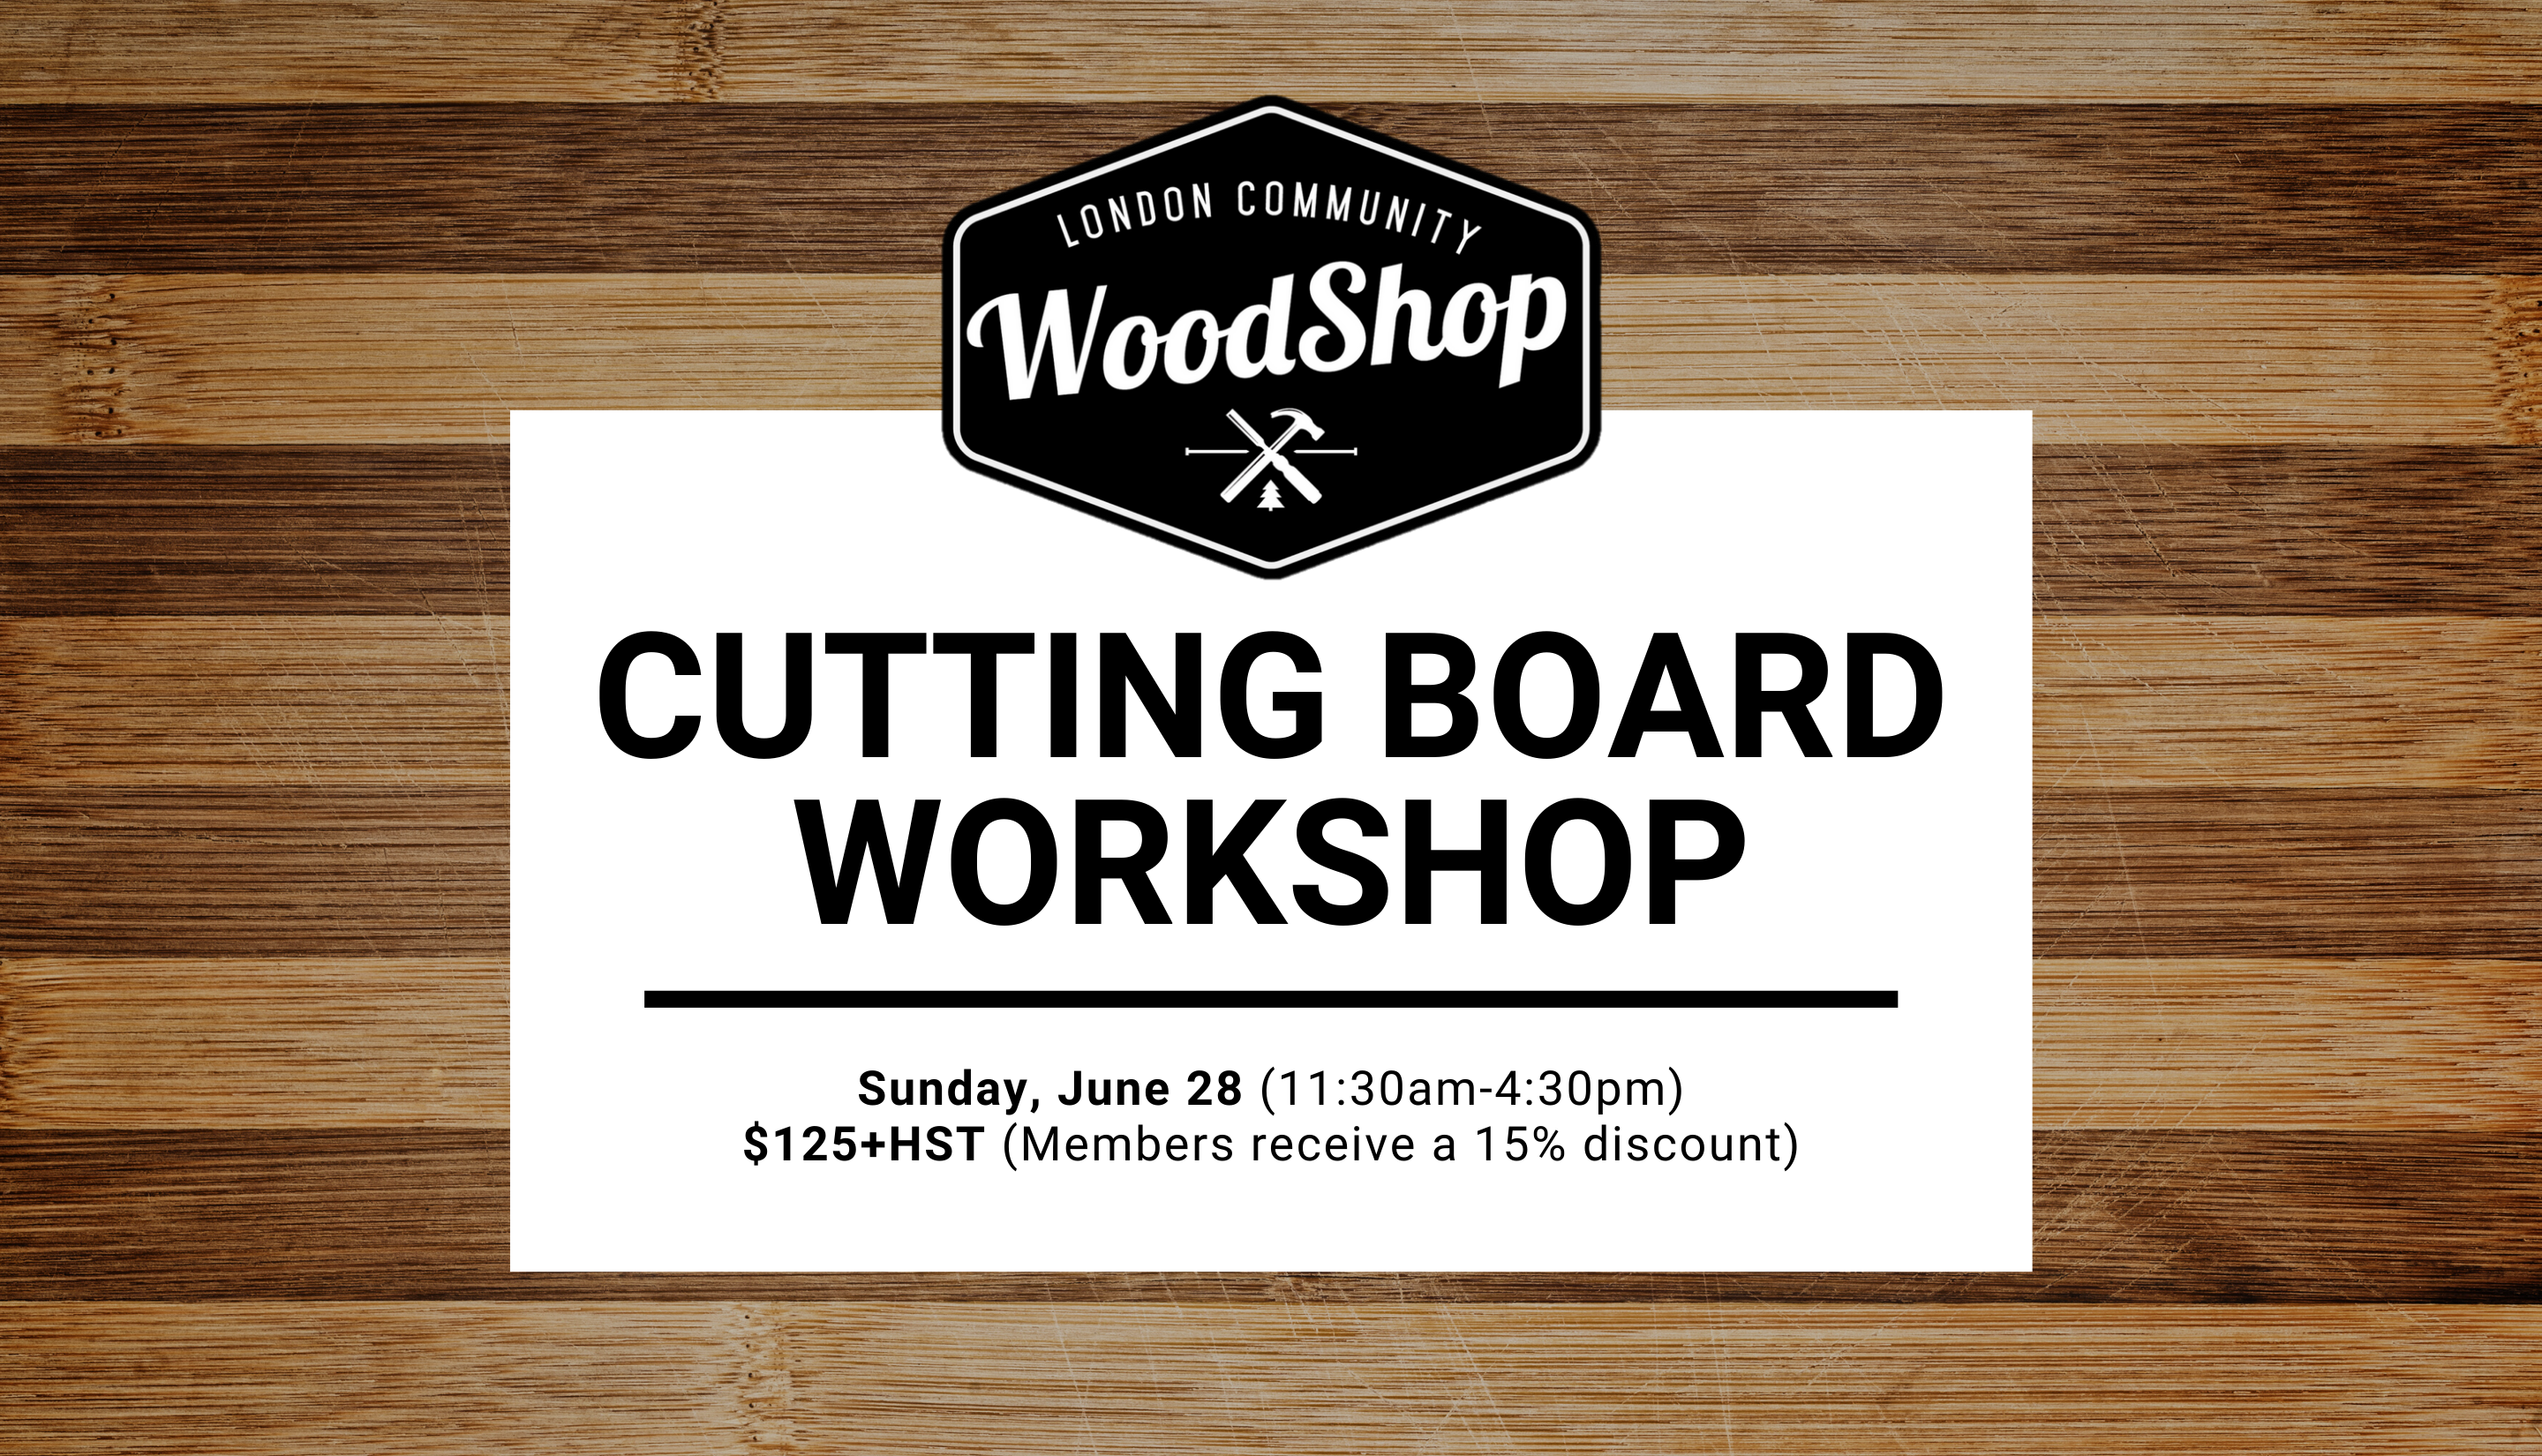 Cutting Board Workshop - Sunday June 28